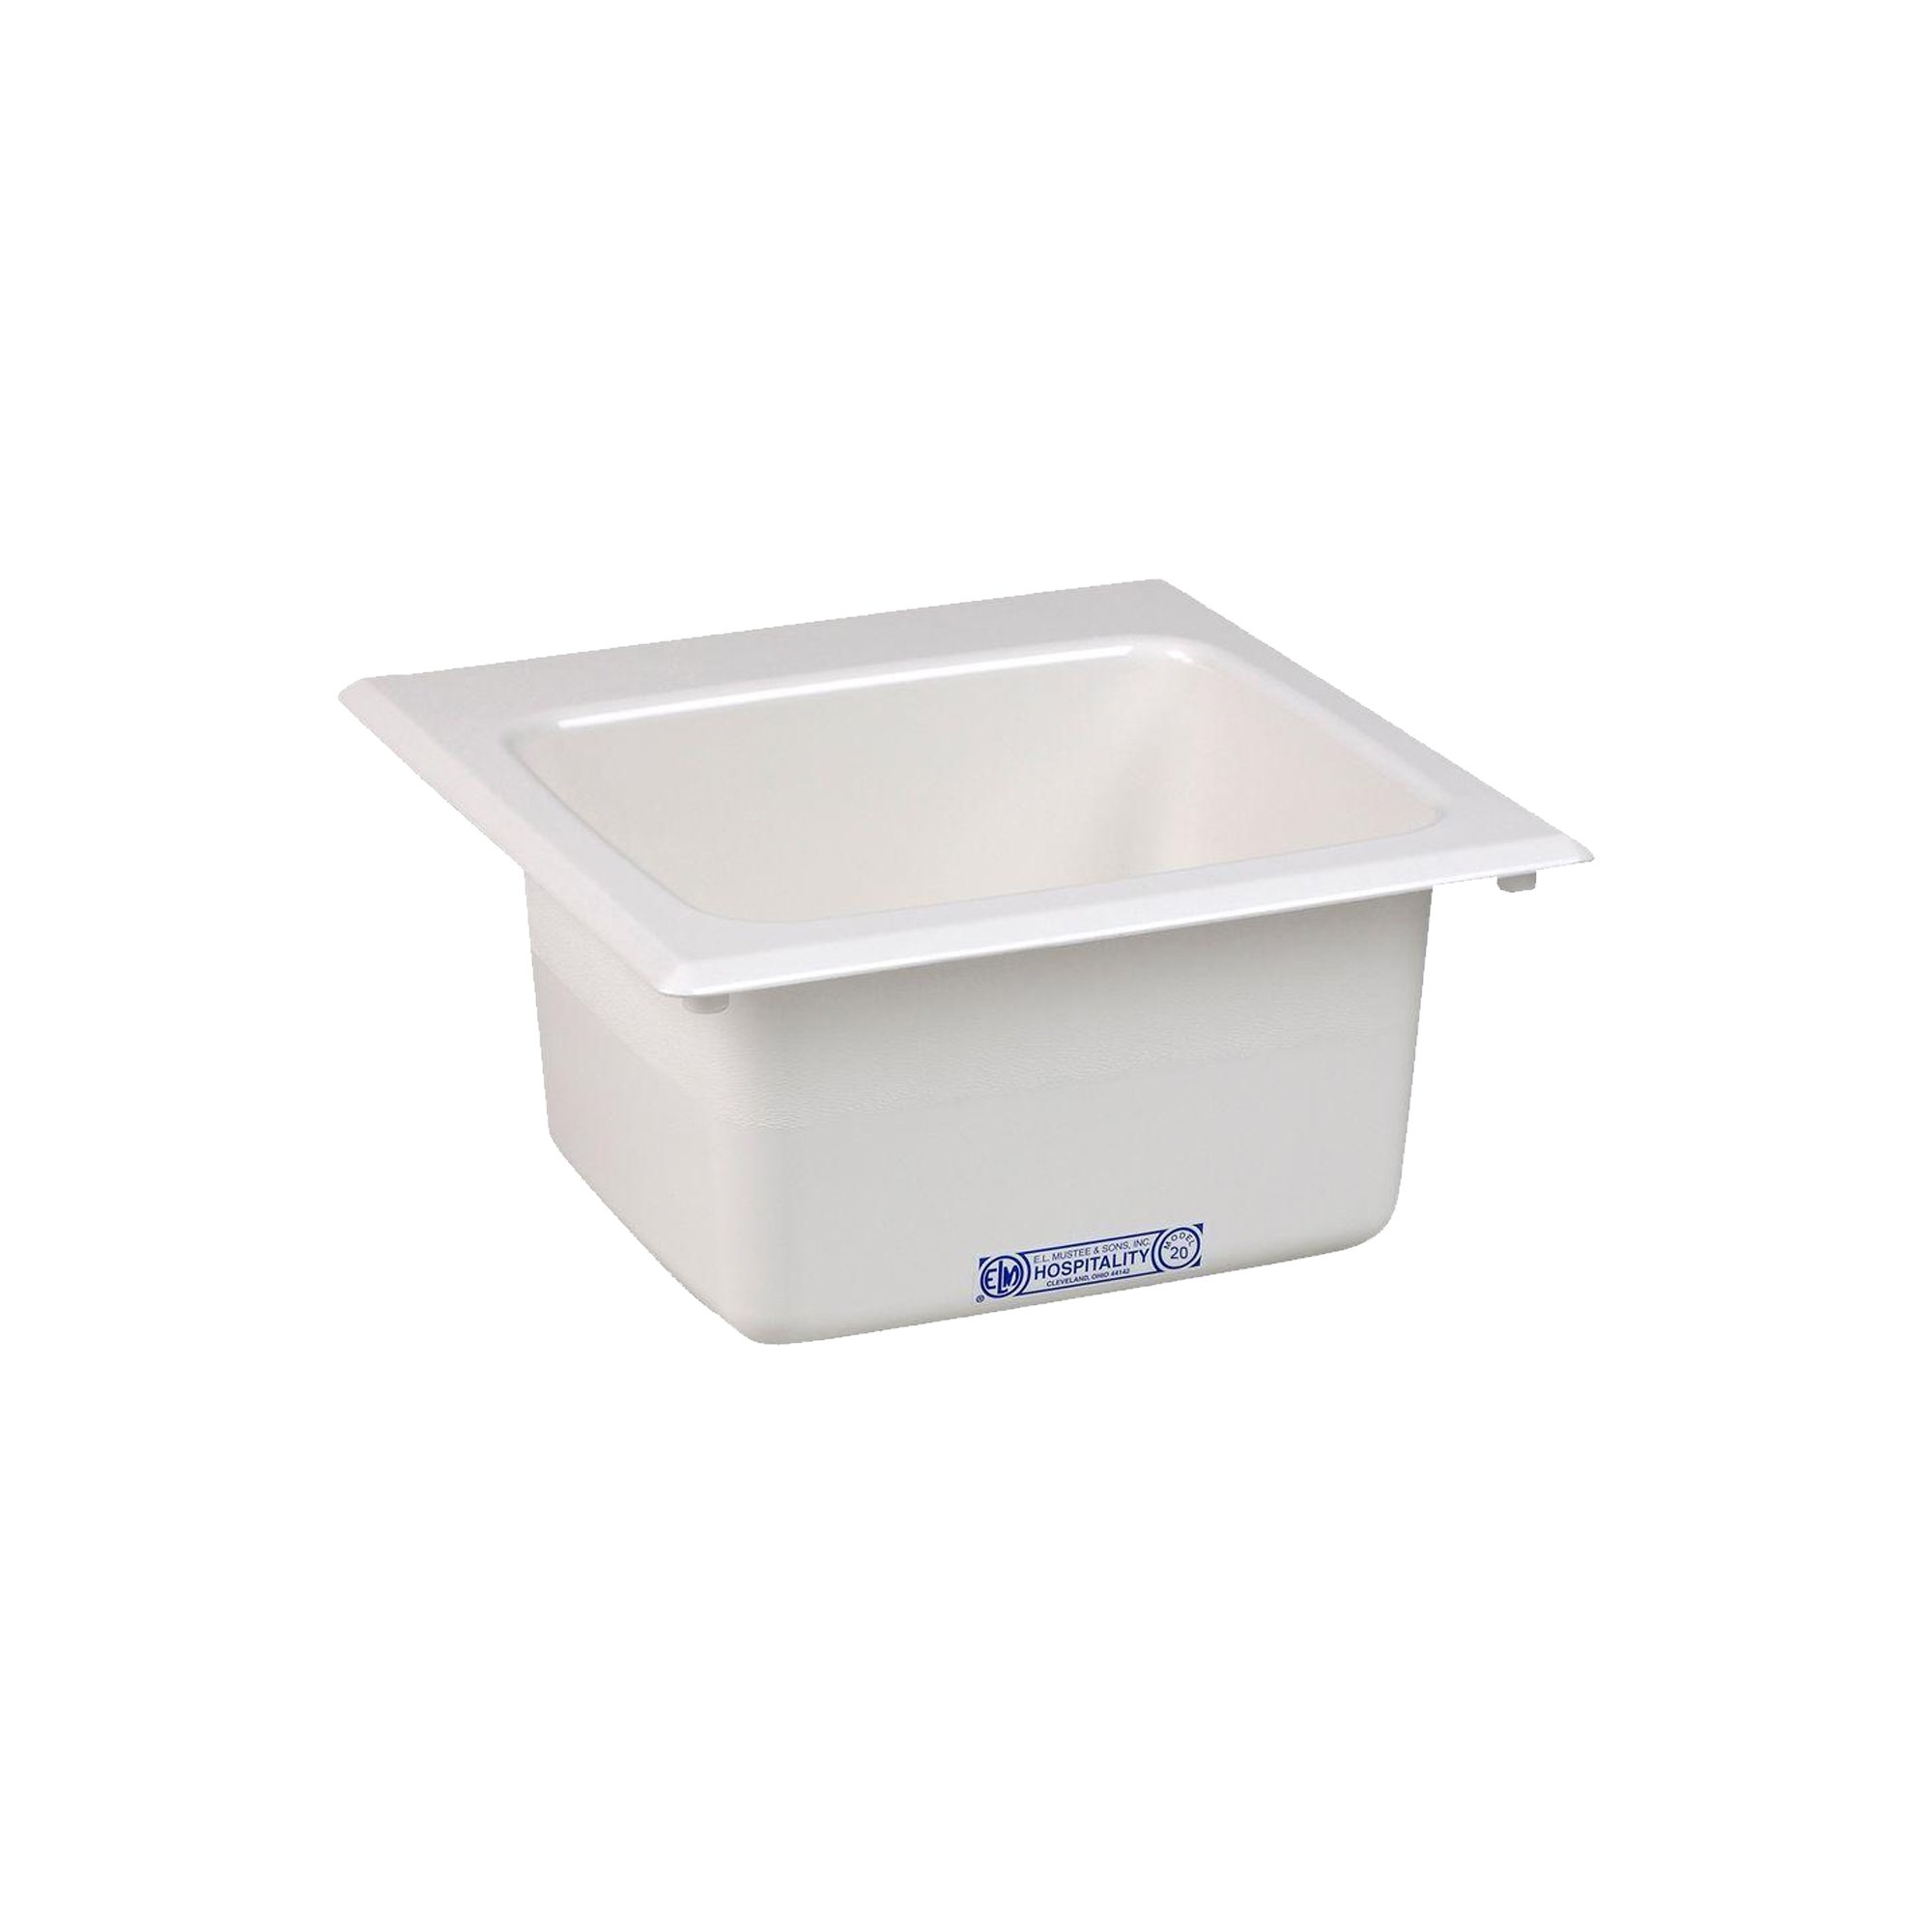 Mustee 20 Bar Sink, 15-Inch x 15-Inch, White